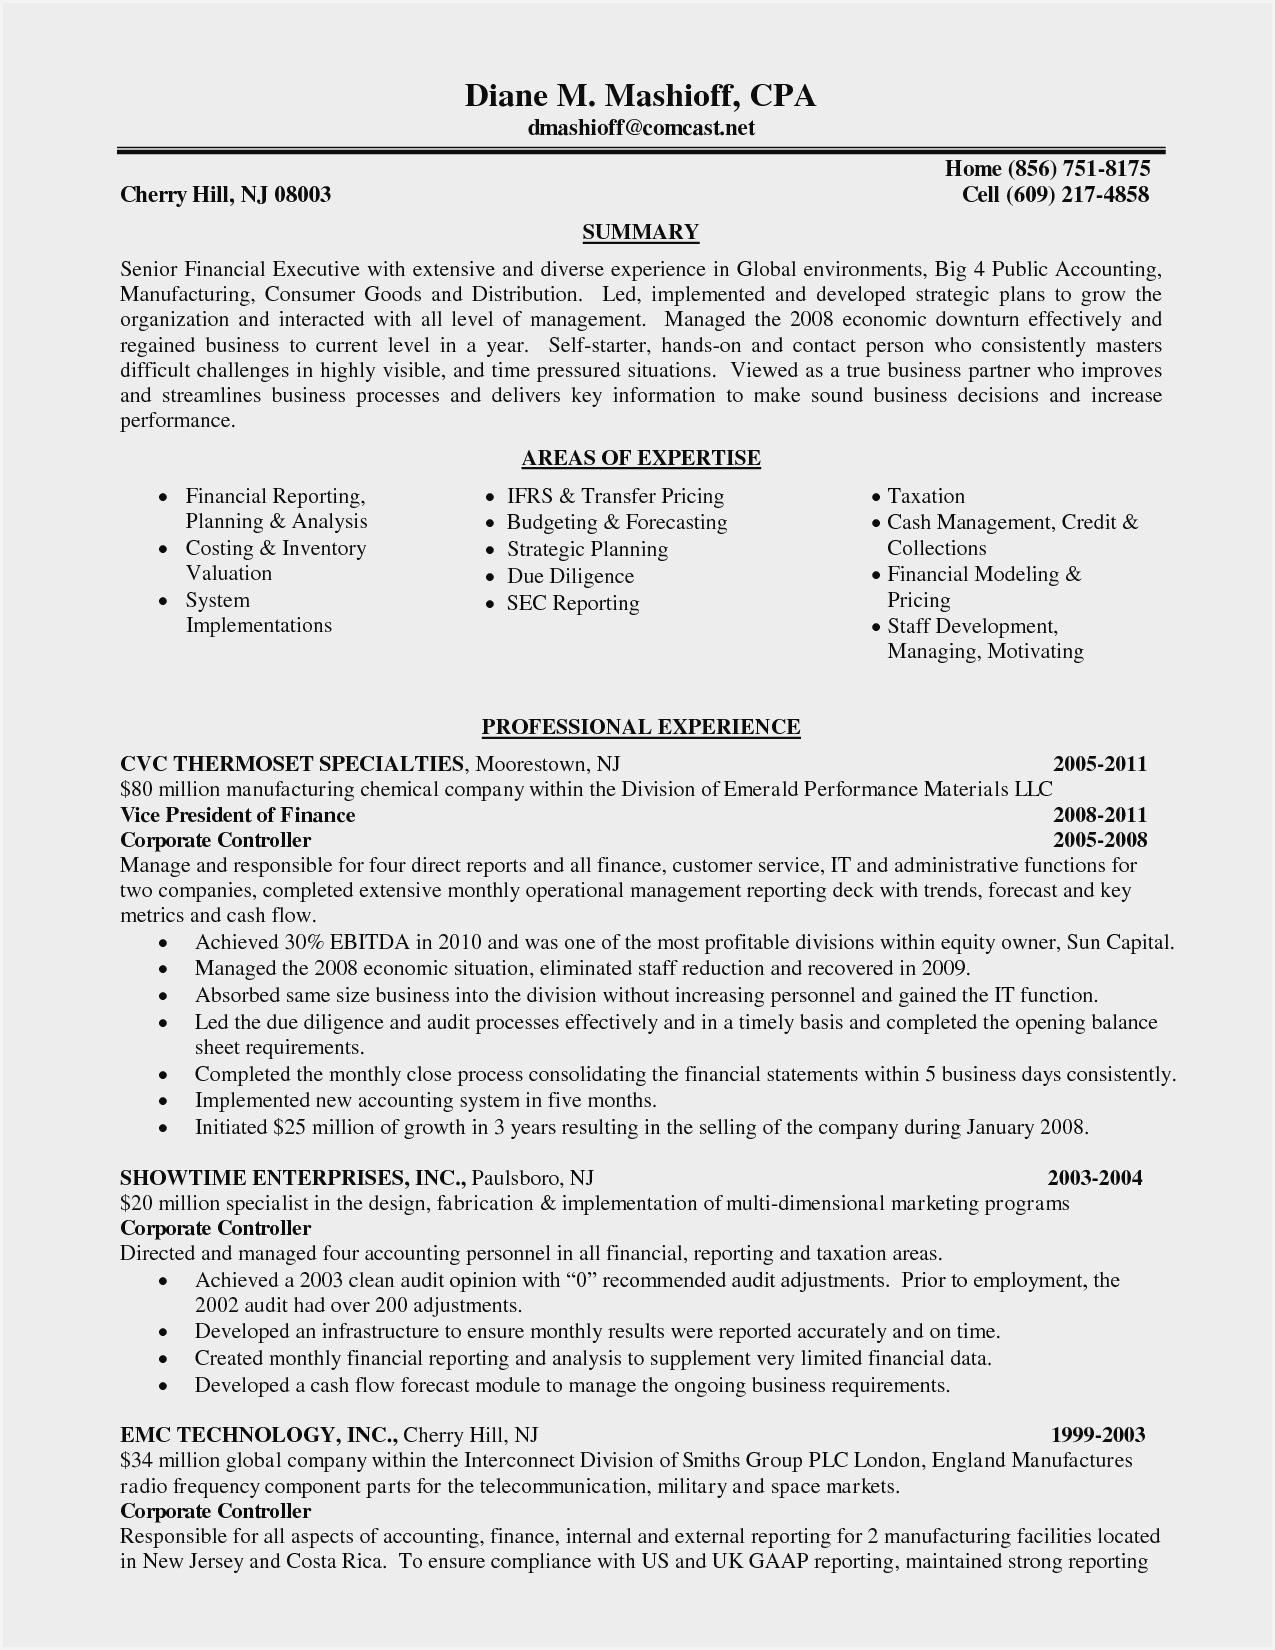 cv templates for chartered accountants resume sample ideas of experienced accountant Resume Resume Of Experienced Chartered Accountant